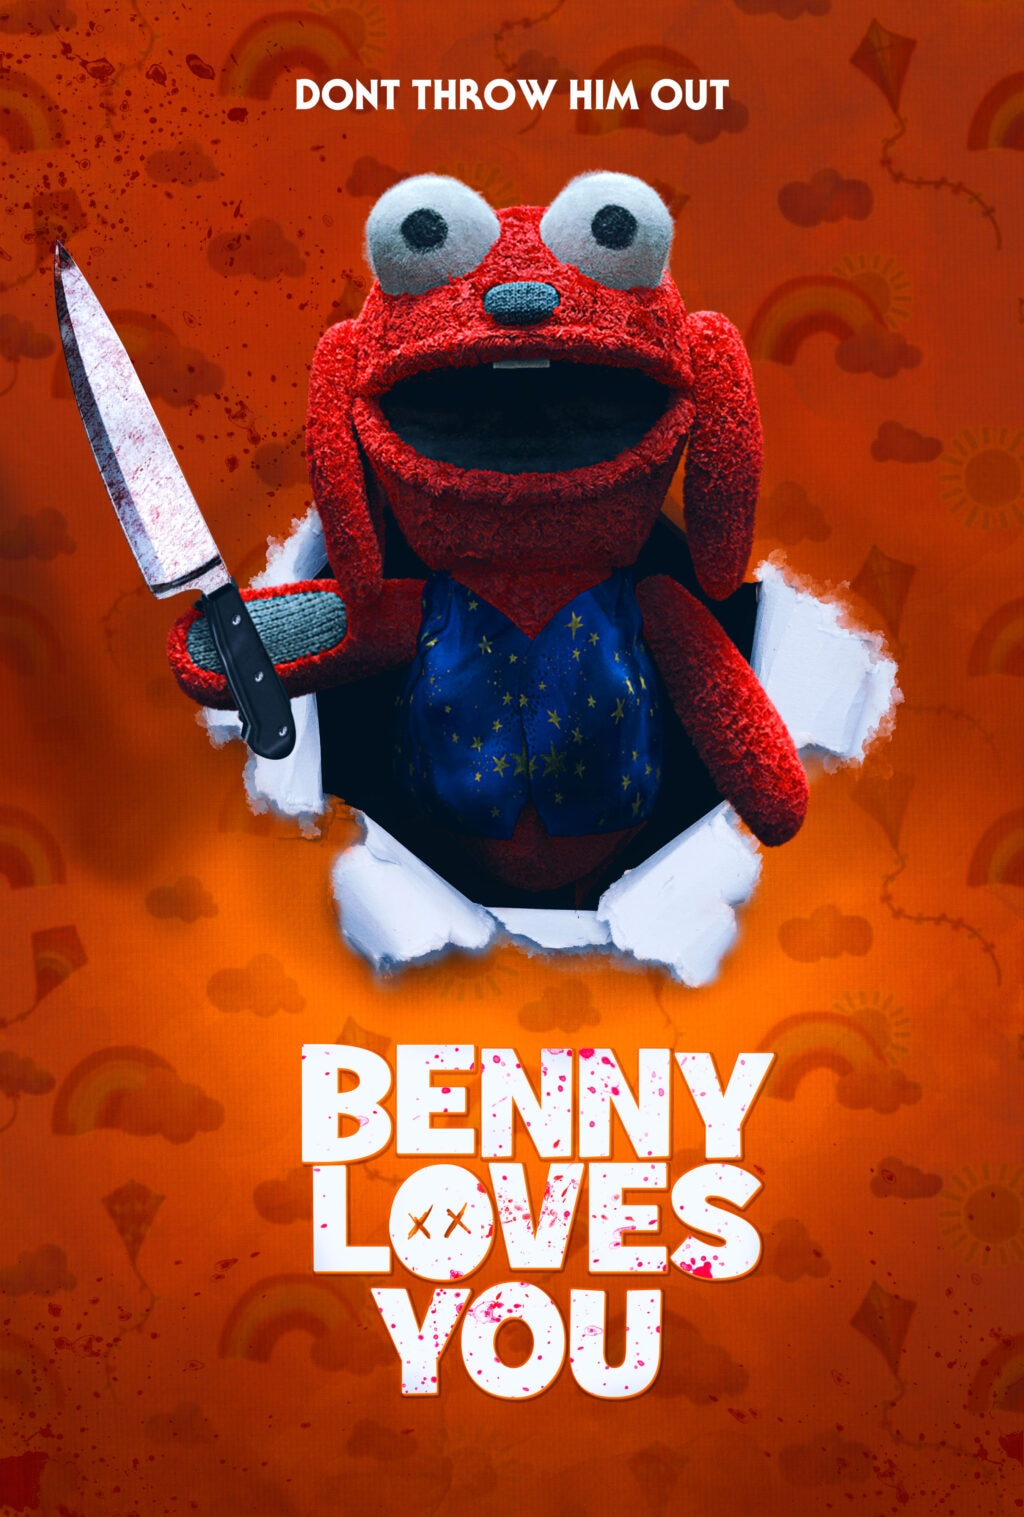 BennyLovesYou posterImage Benny Loves You Final Small web 1024x1517 - Benny Wants to Play in New Clip from BENNY LOVES YOU Now in Select Theaters [Video]